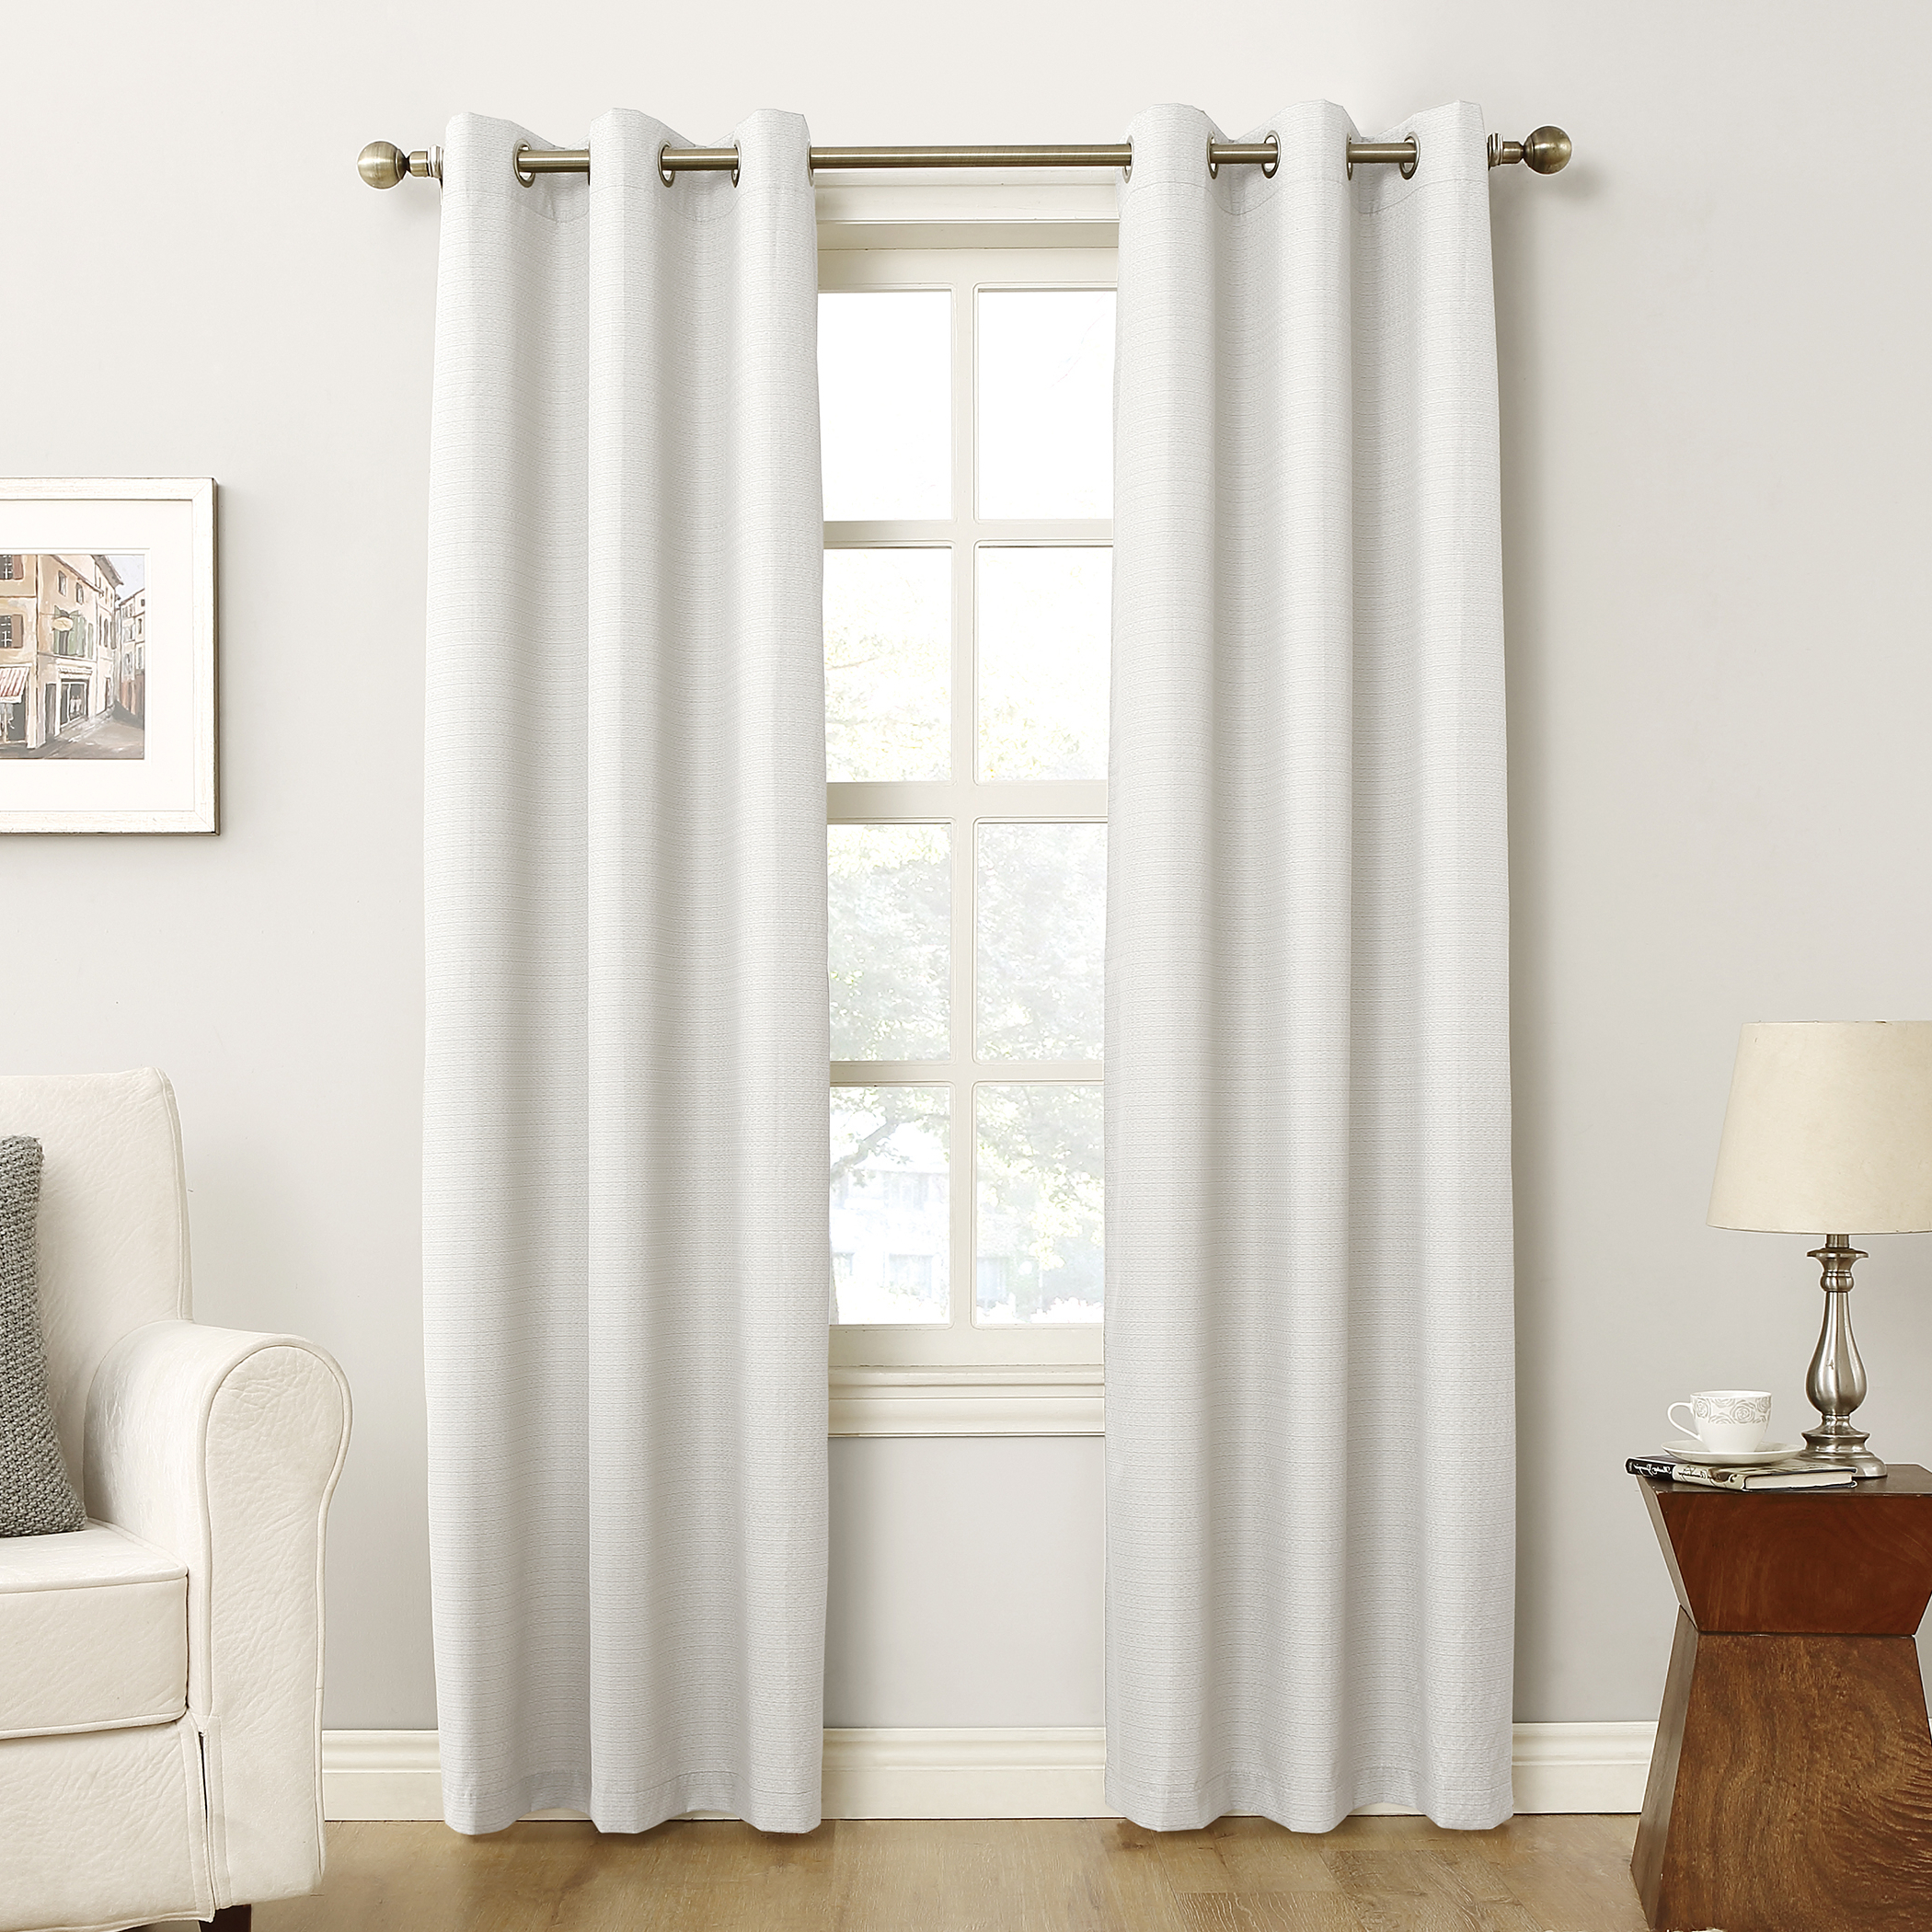 Cooper Textured Thermal Insulated Grommet Curtain Panels For Most Popular Sun Zero Cooper Textured Thermal Lined Room Darkening Energy Efficient  Grommet Curtain Panel (View 2 of 20)